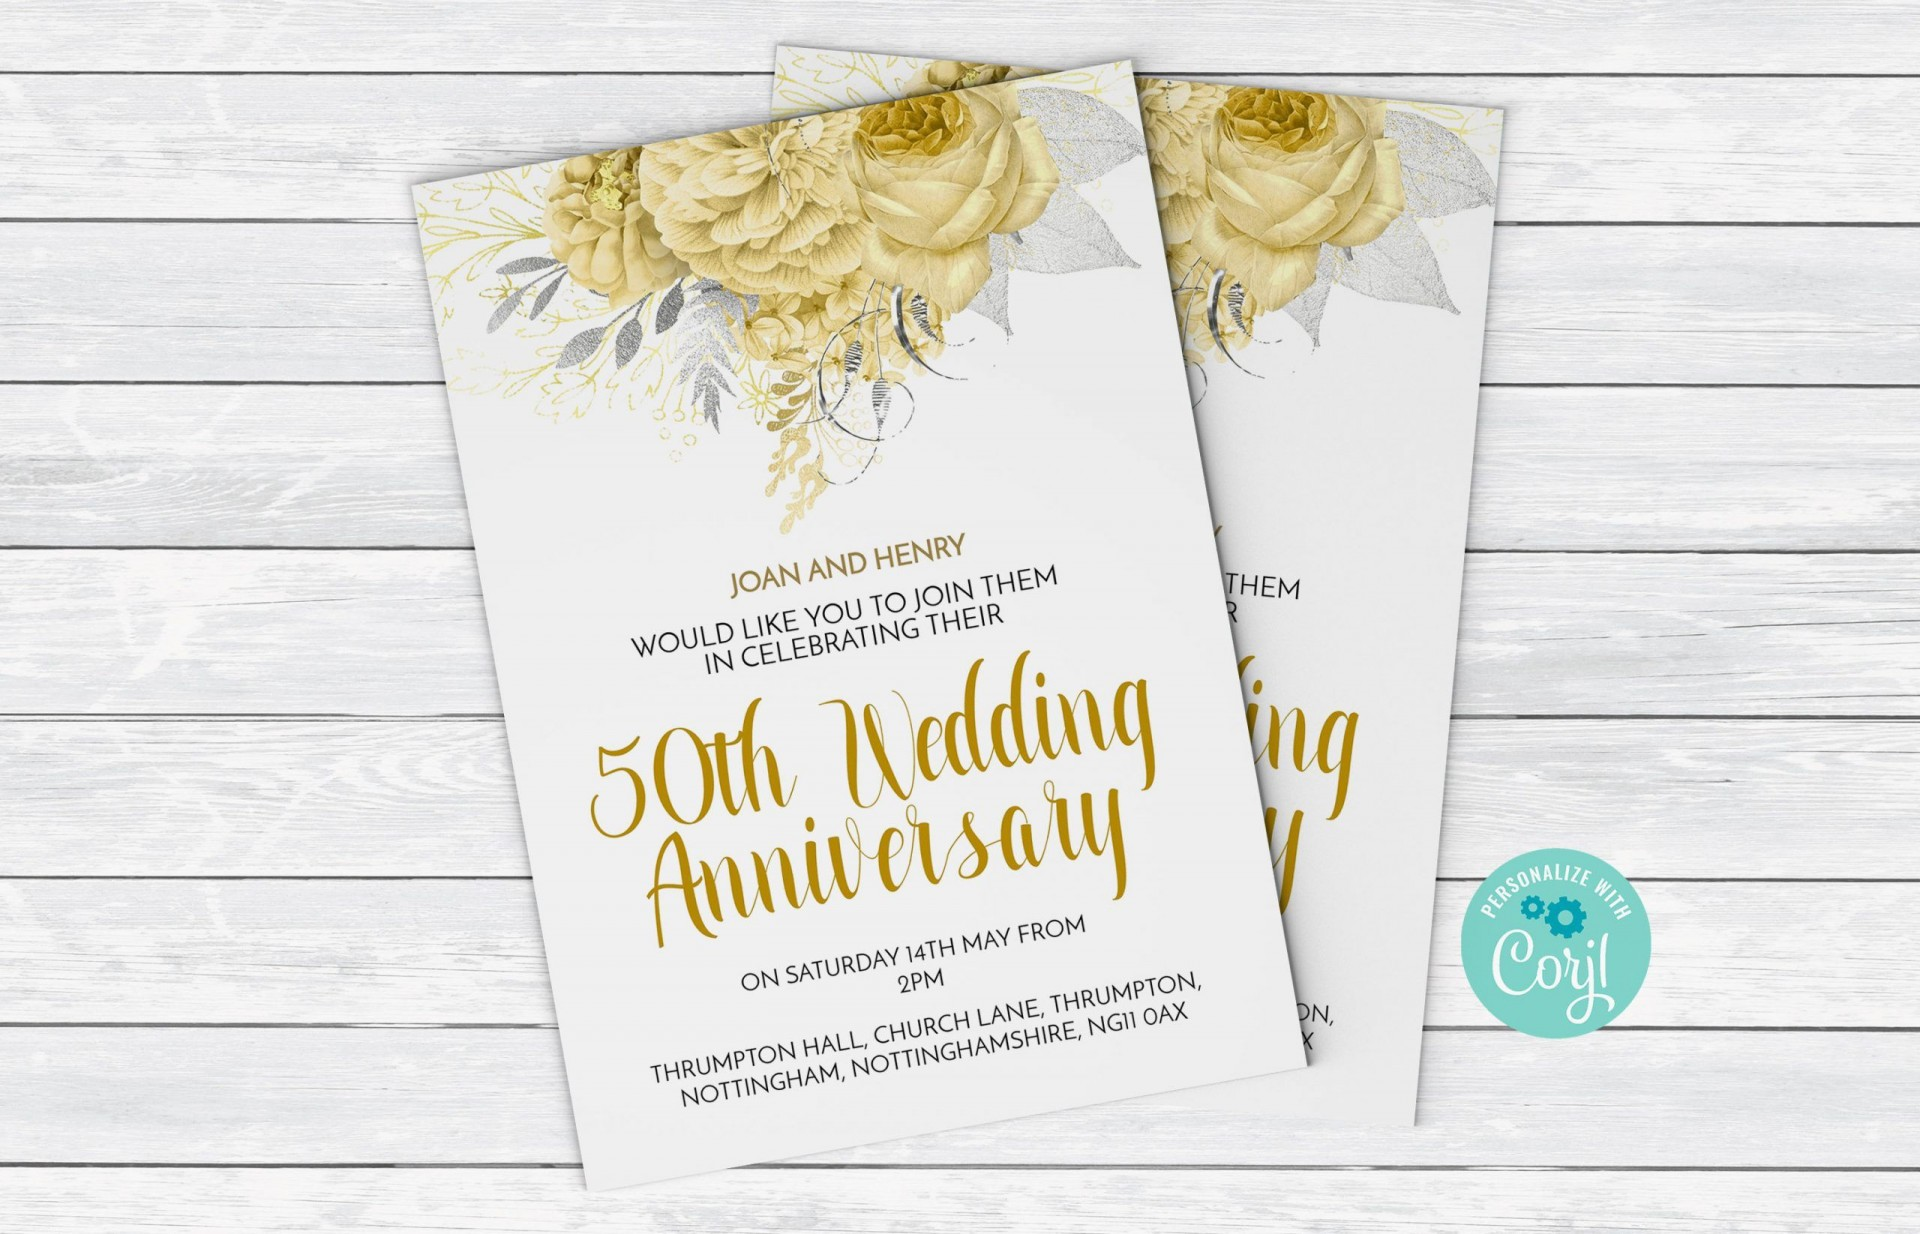 002 Imposing 50th Anniversary Party Invitation Template High Resolution  Templates Golden Wedding Uk Microsoft Word Free1920